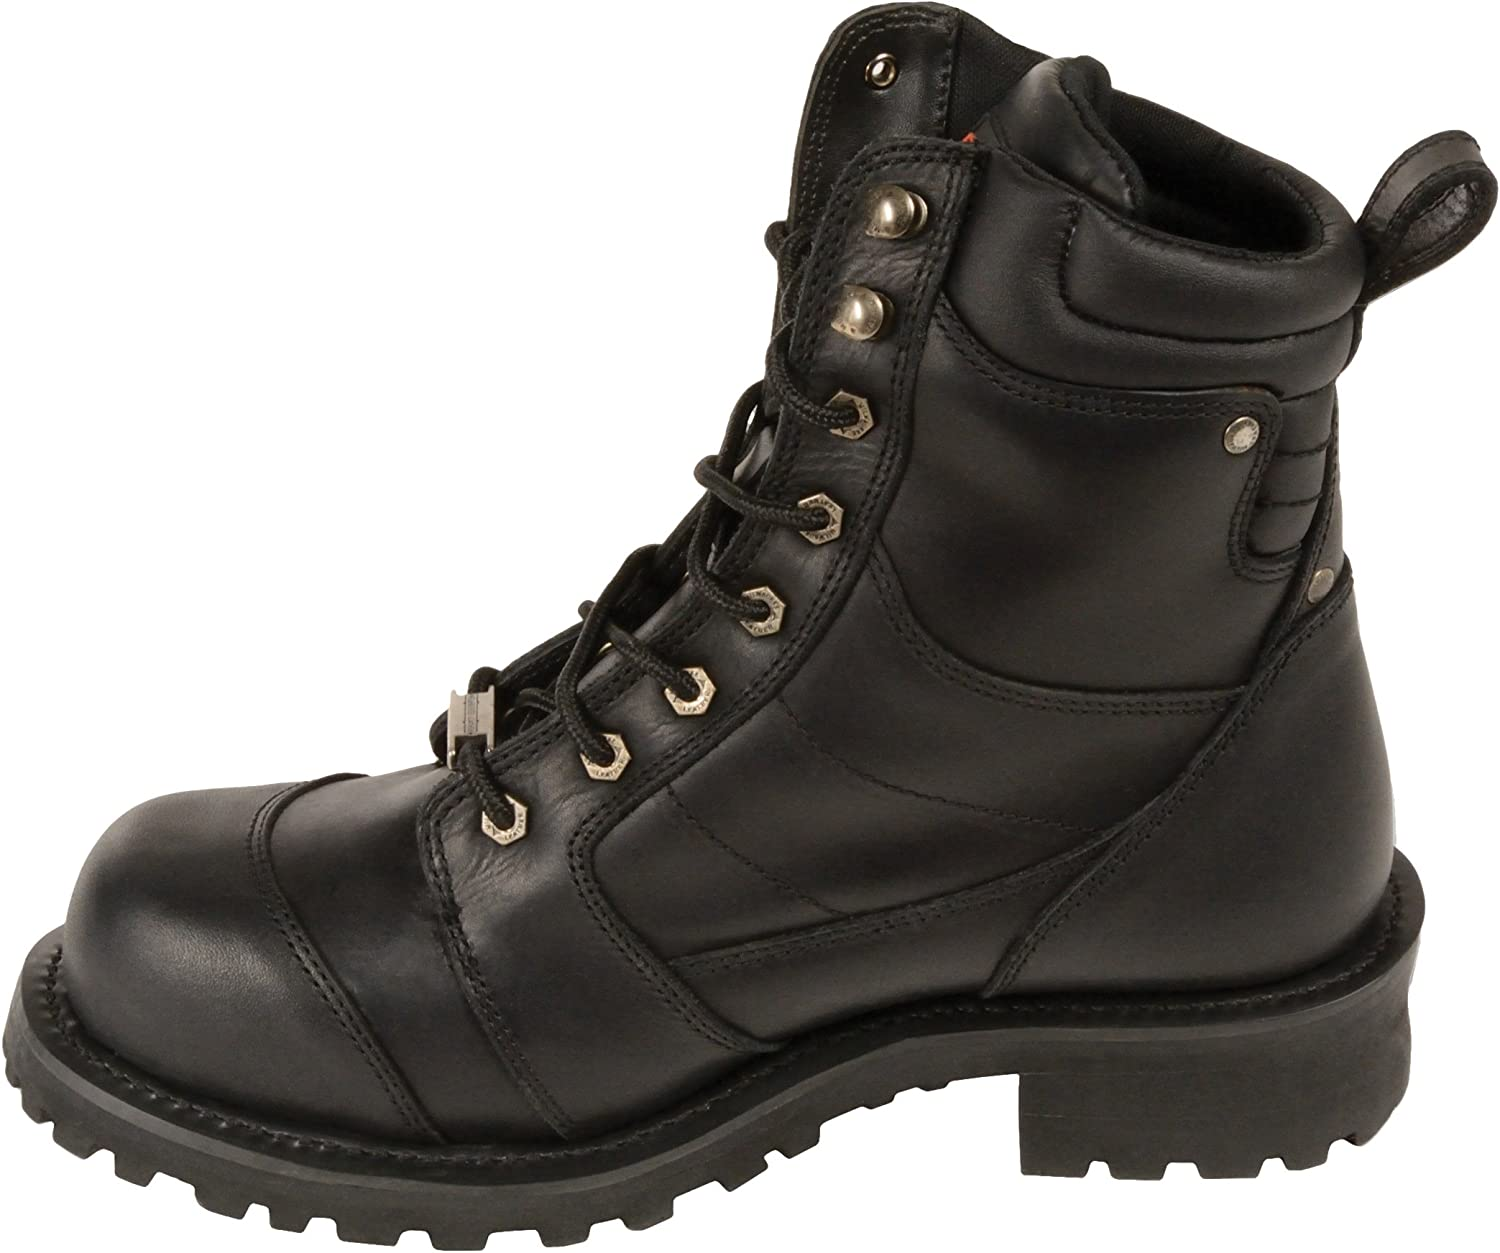 Black, Size 7W Milwaukee Leather Mens Waterproof Logger Boots with Lace to Toe Design